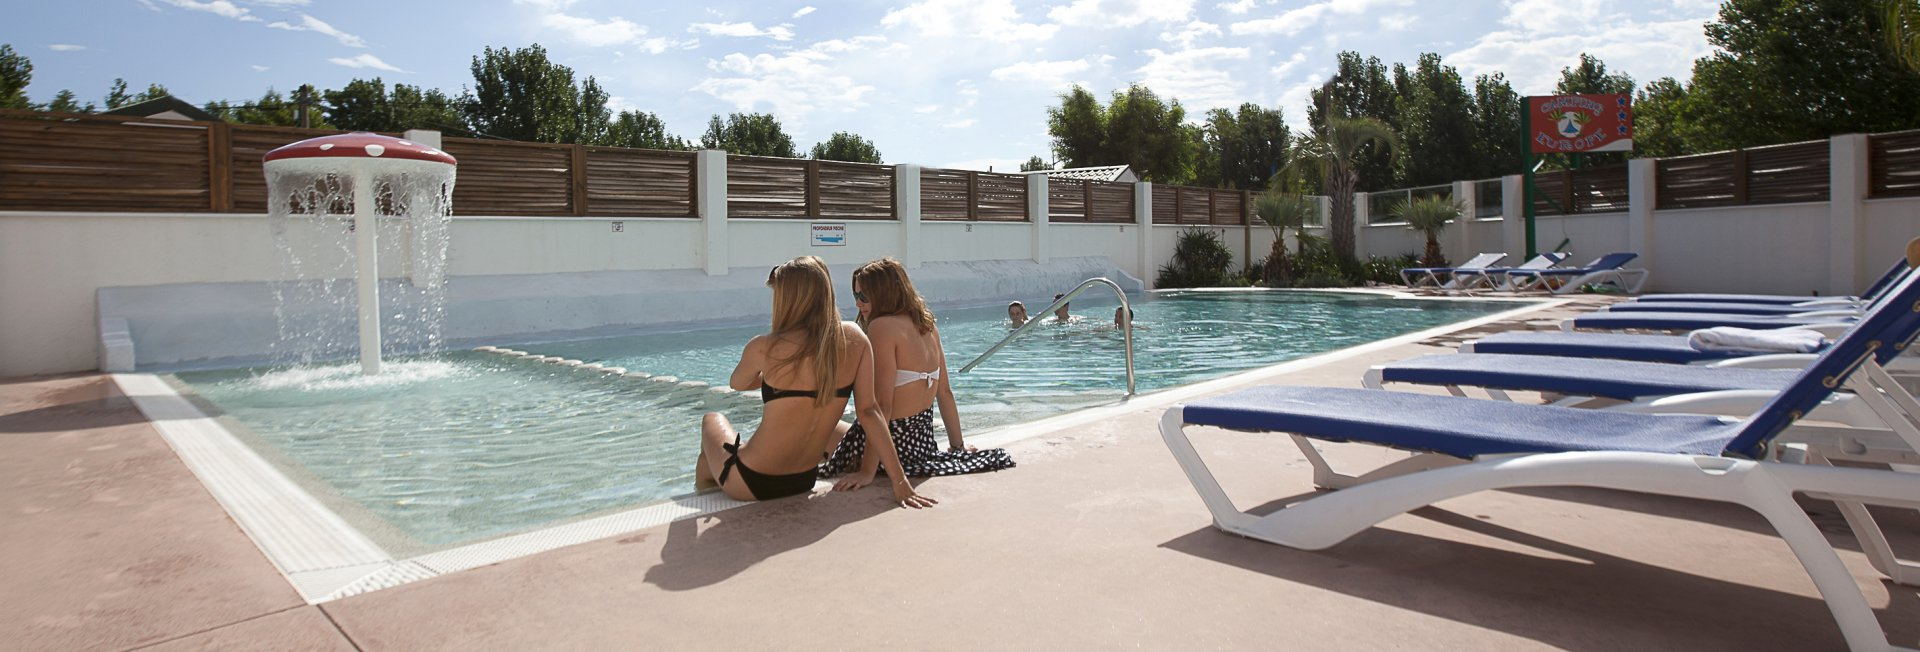 The tranquility at the edge of the heated swimming pool of camping europe argeles beach